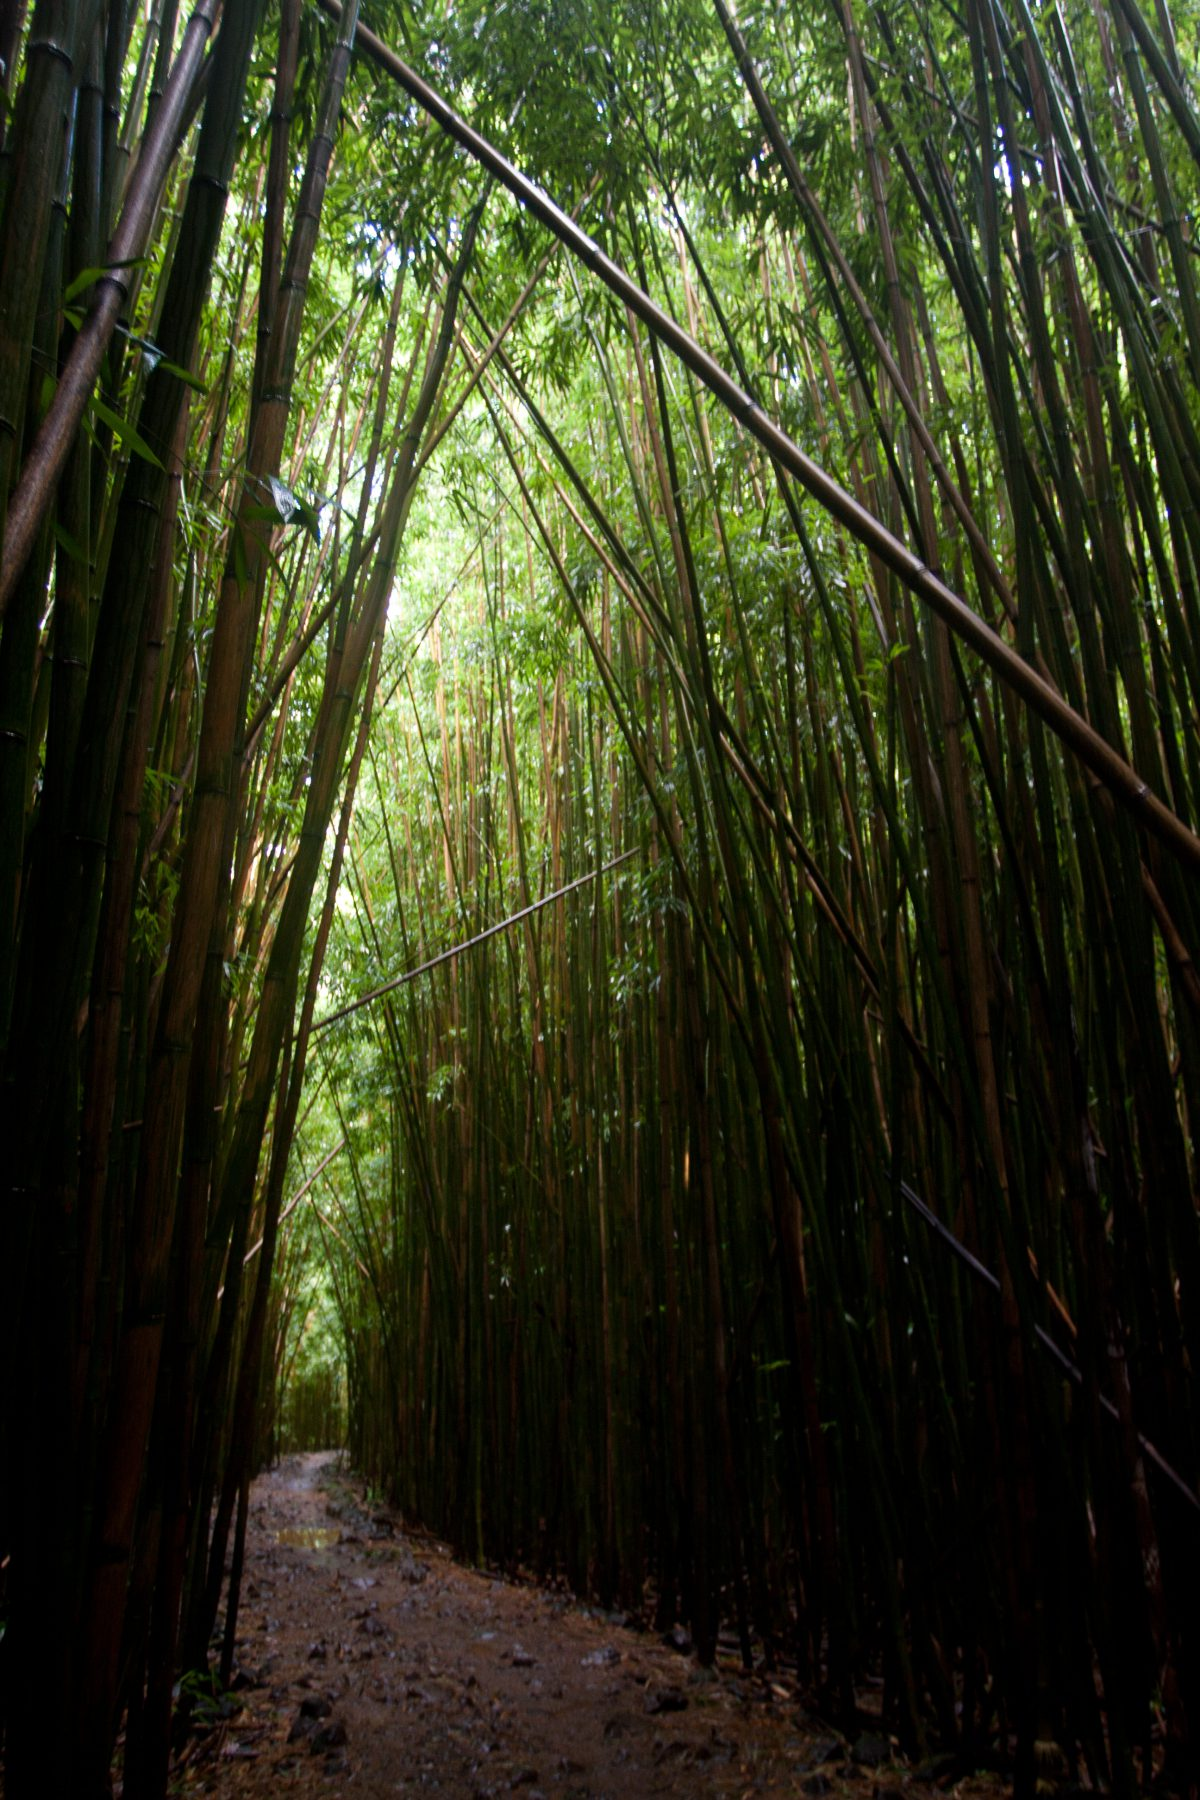 Kipahulu - Bamboo forest, forest, tree, trail, bamboo